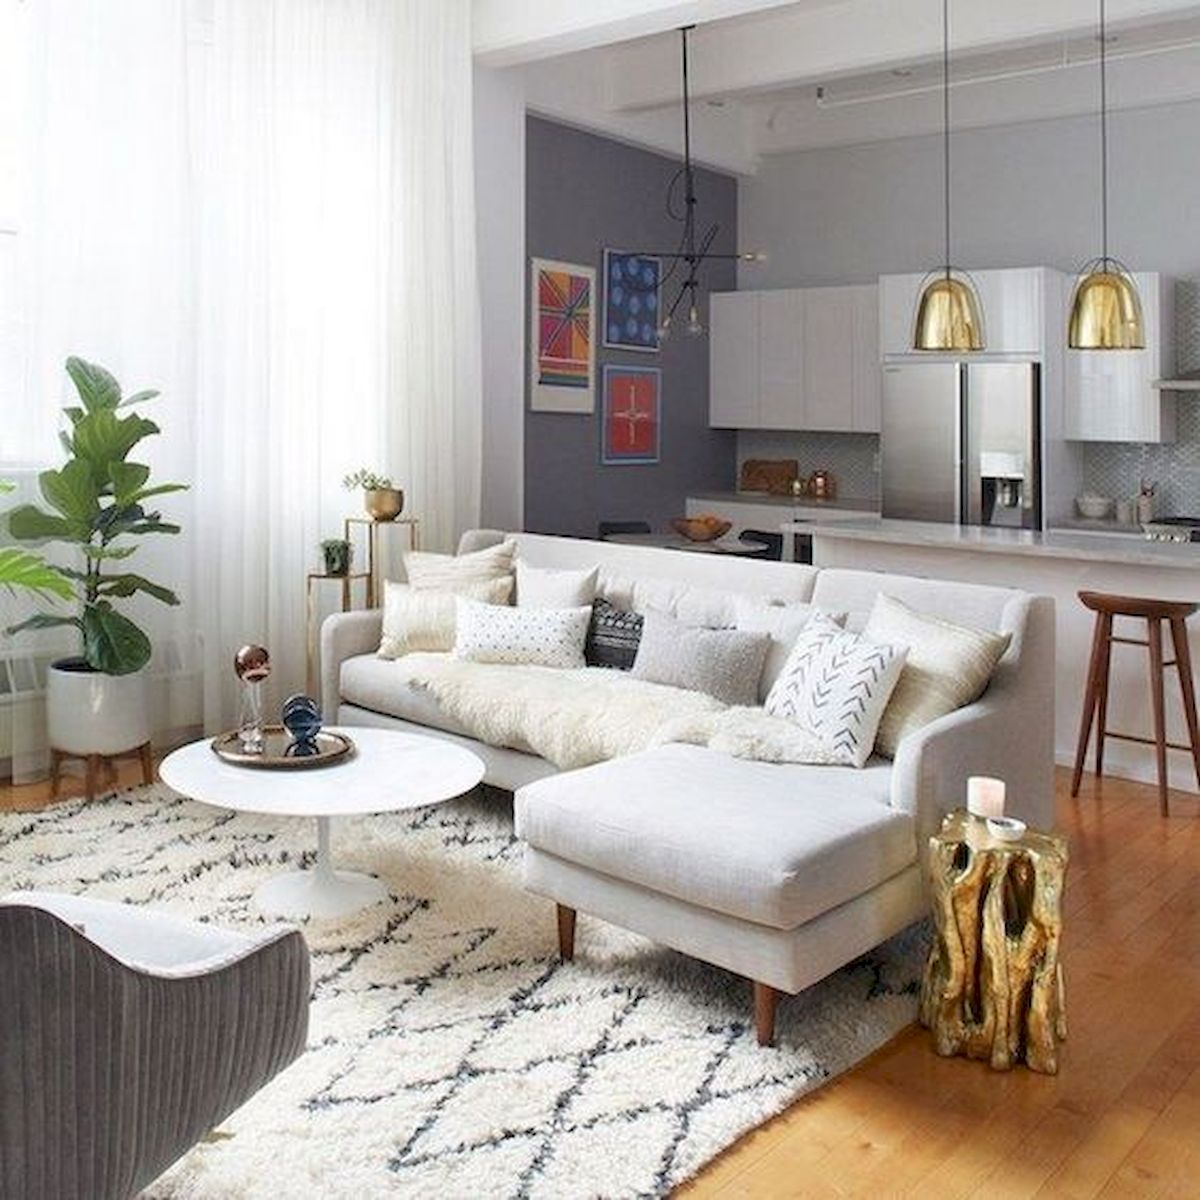 57 Cozy Living Room Apartment Decor Ideas 37